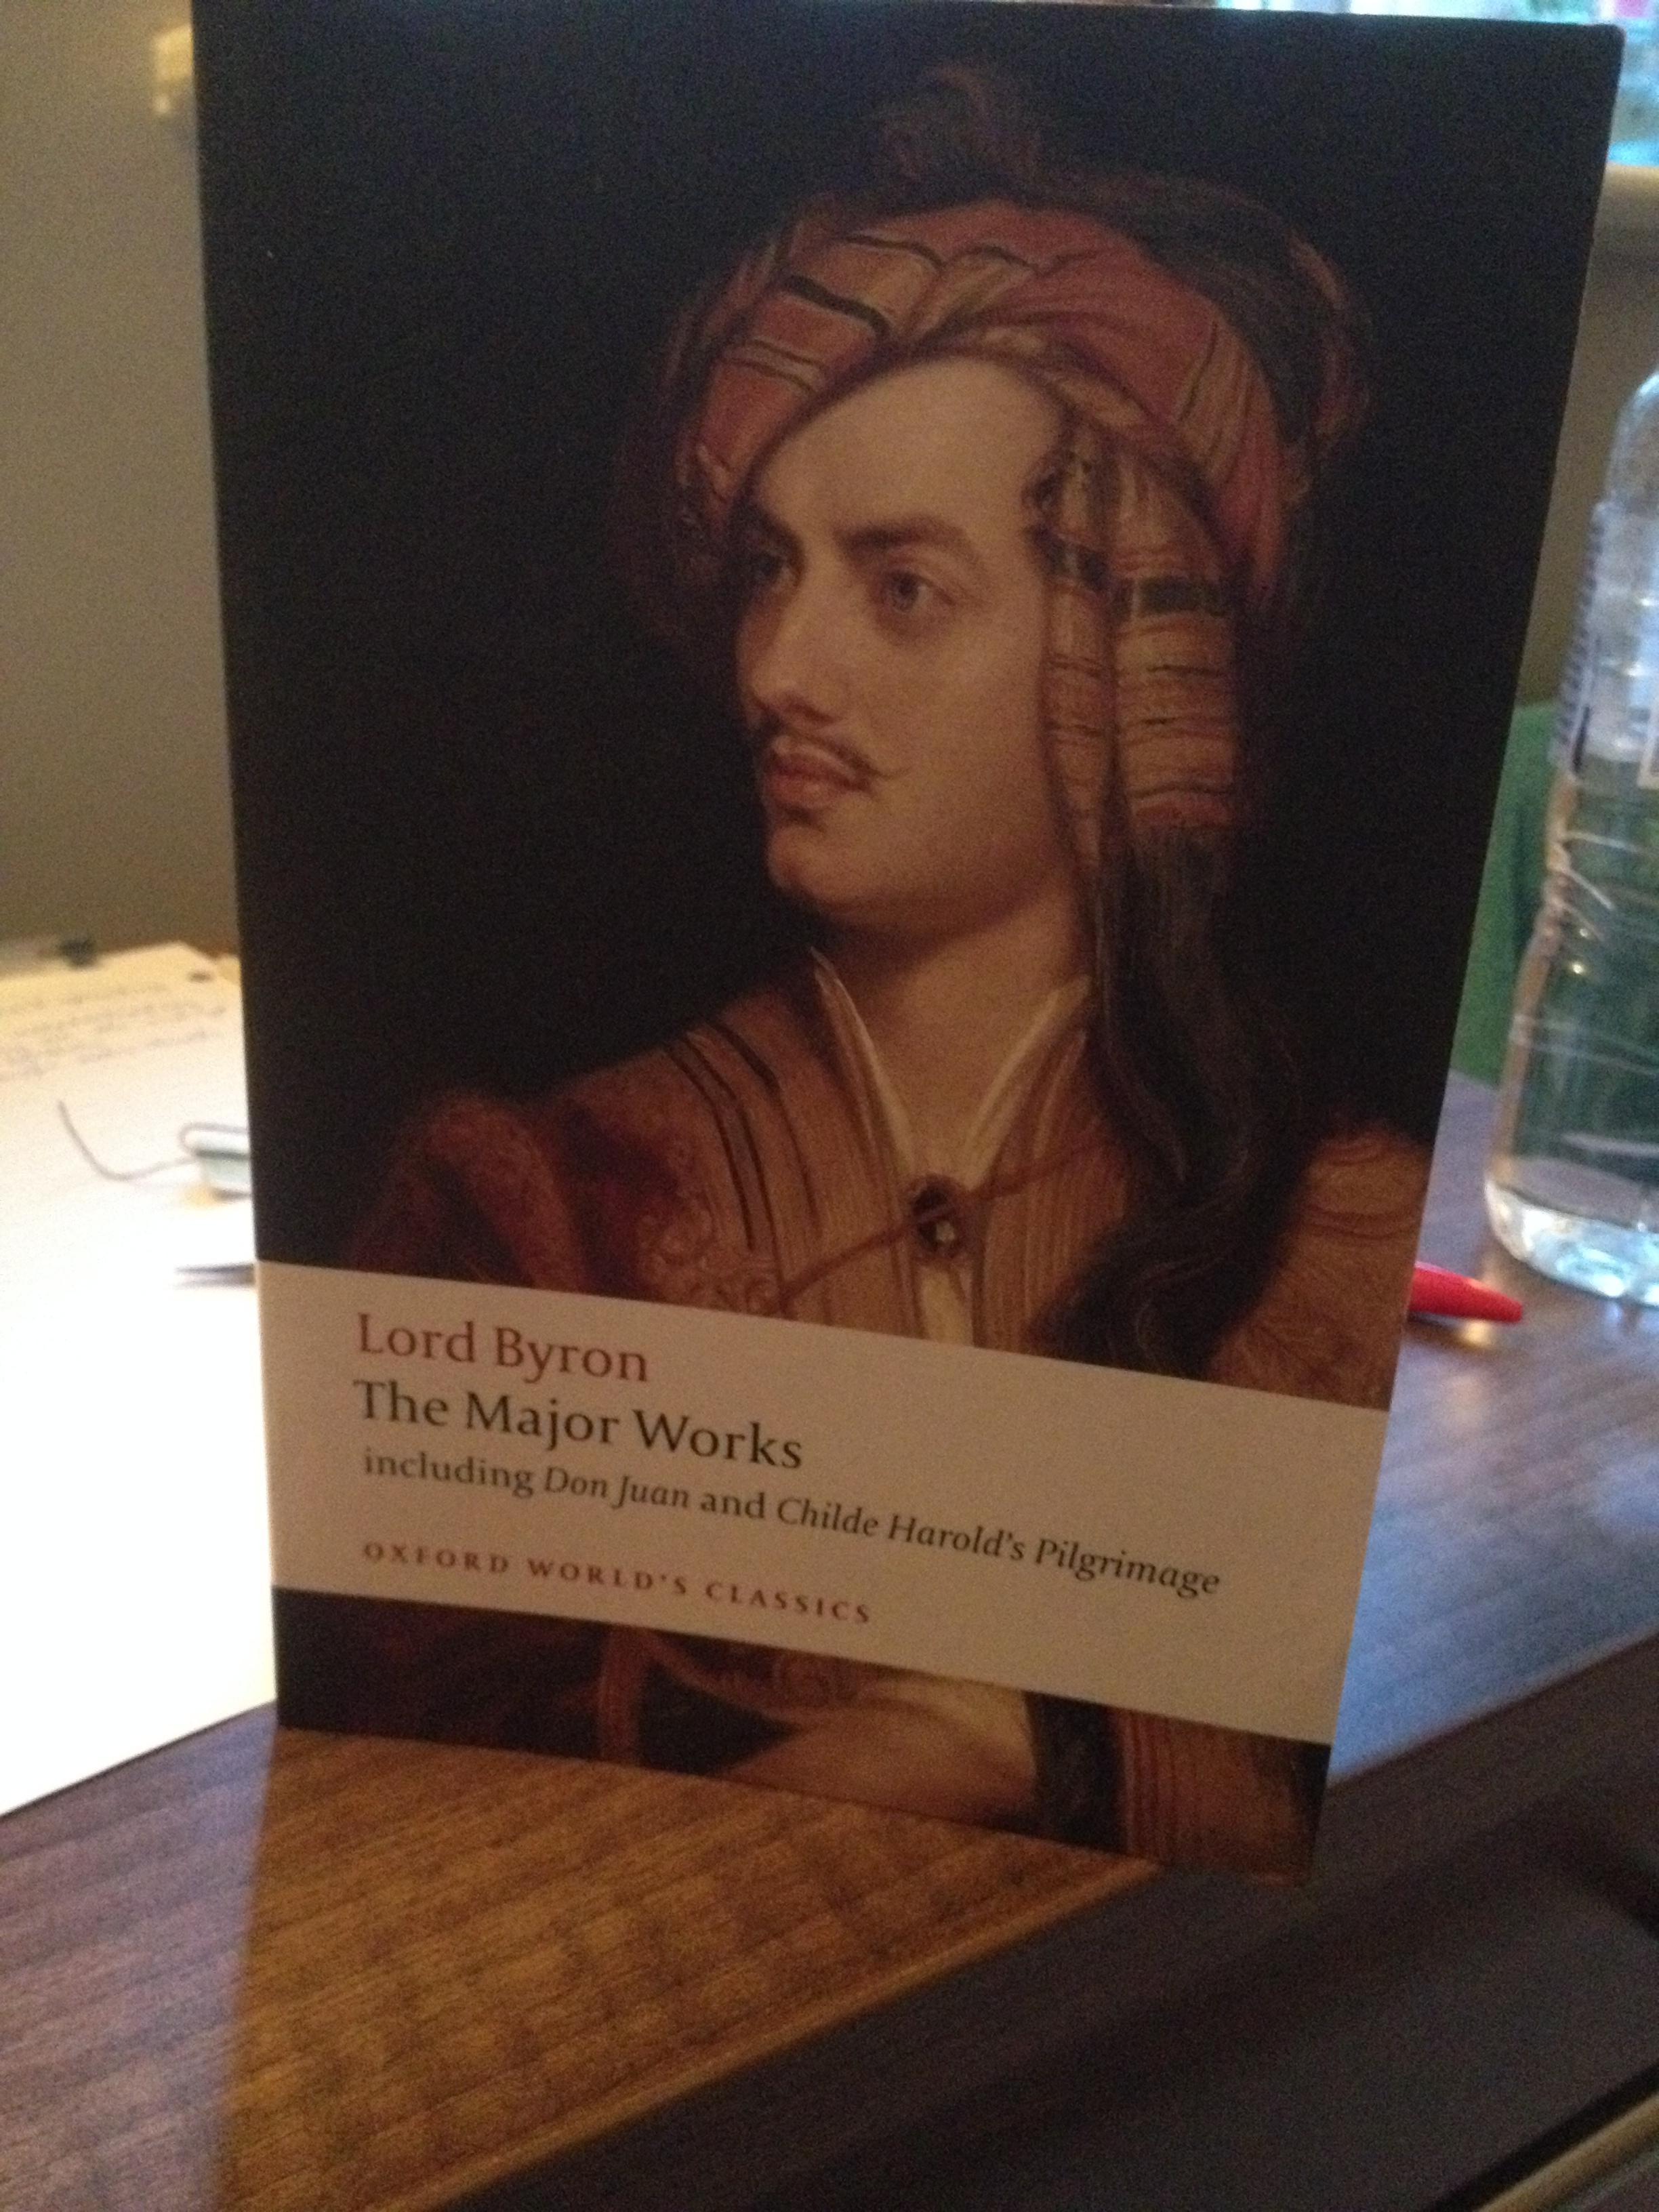 Lord Byron - not sure if I'll ever get through this. Oh MA, what are you doing to me?!